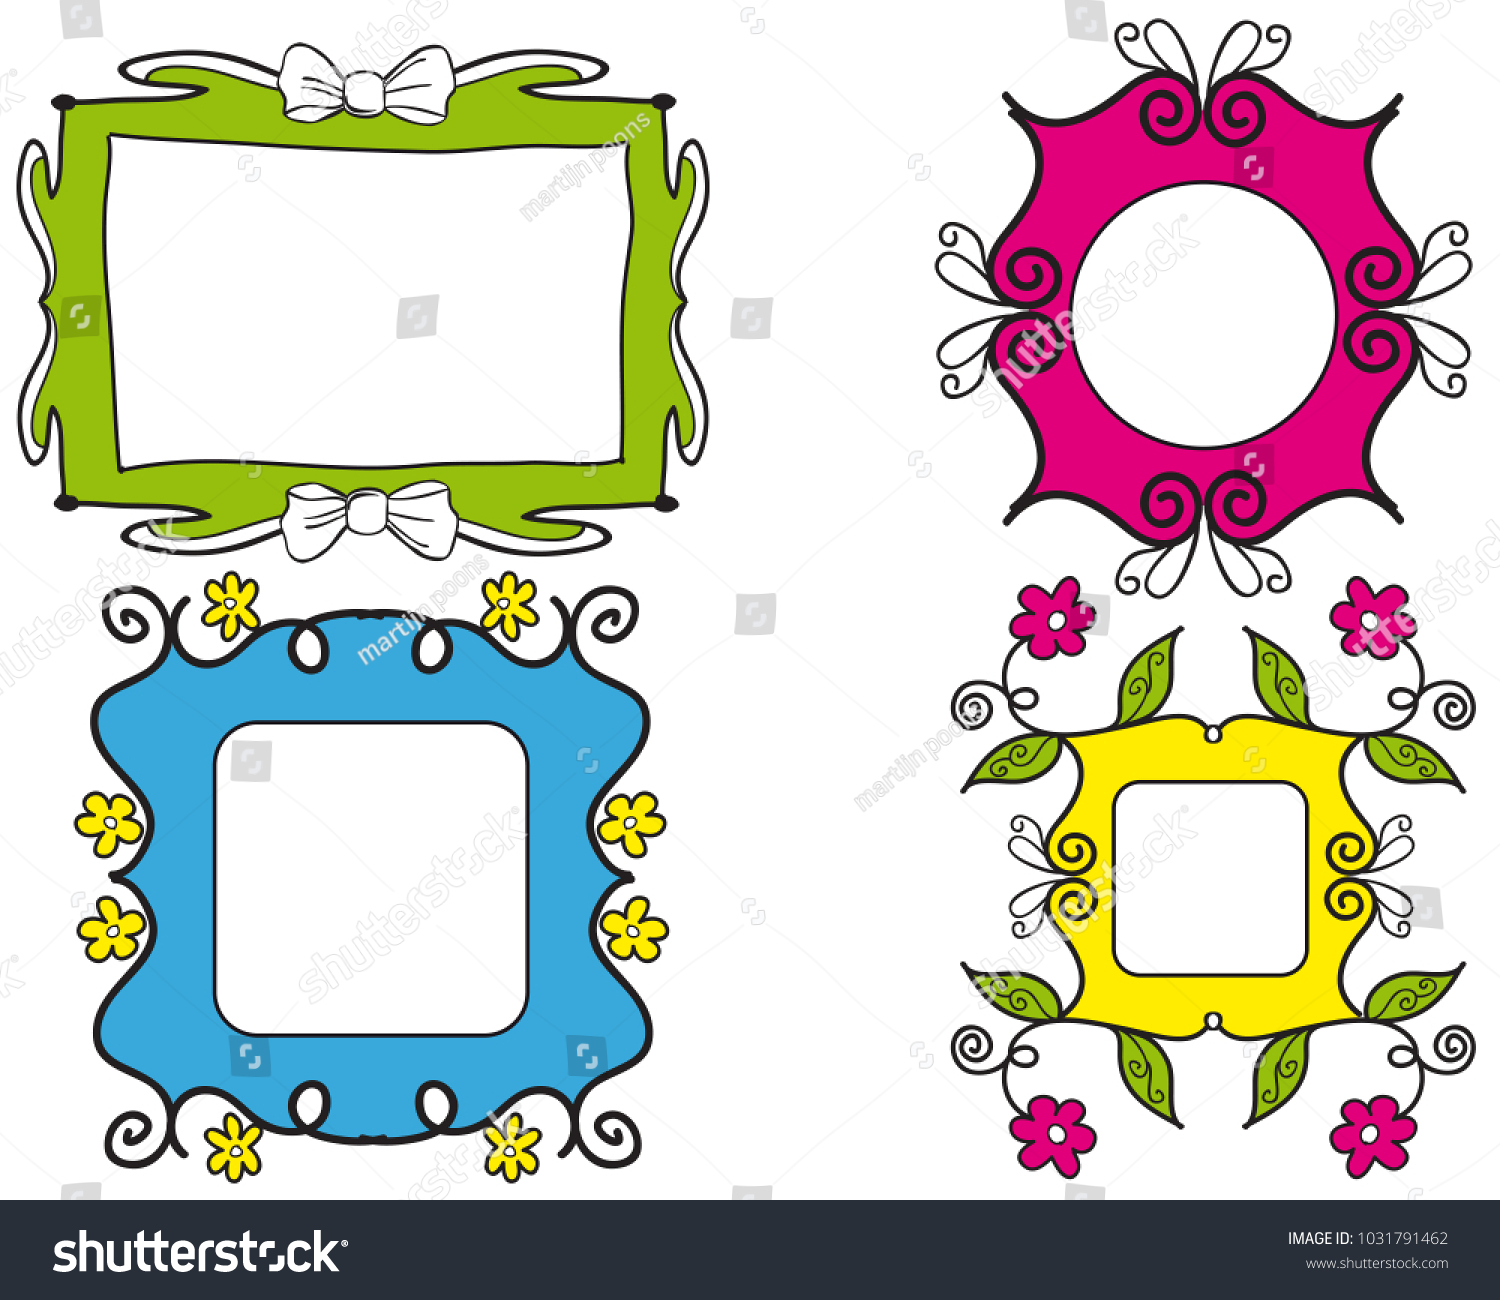 Set Colorful Girly Picture Frames Swirls Stock Vector 1031791462 ...